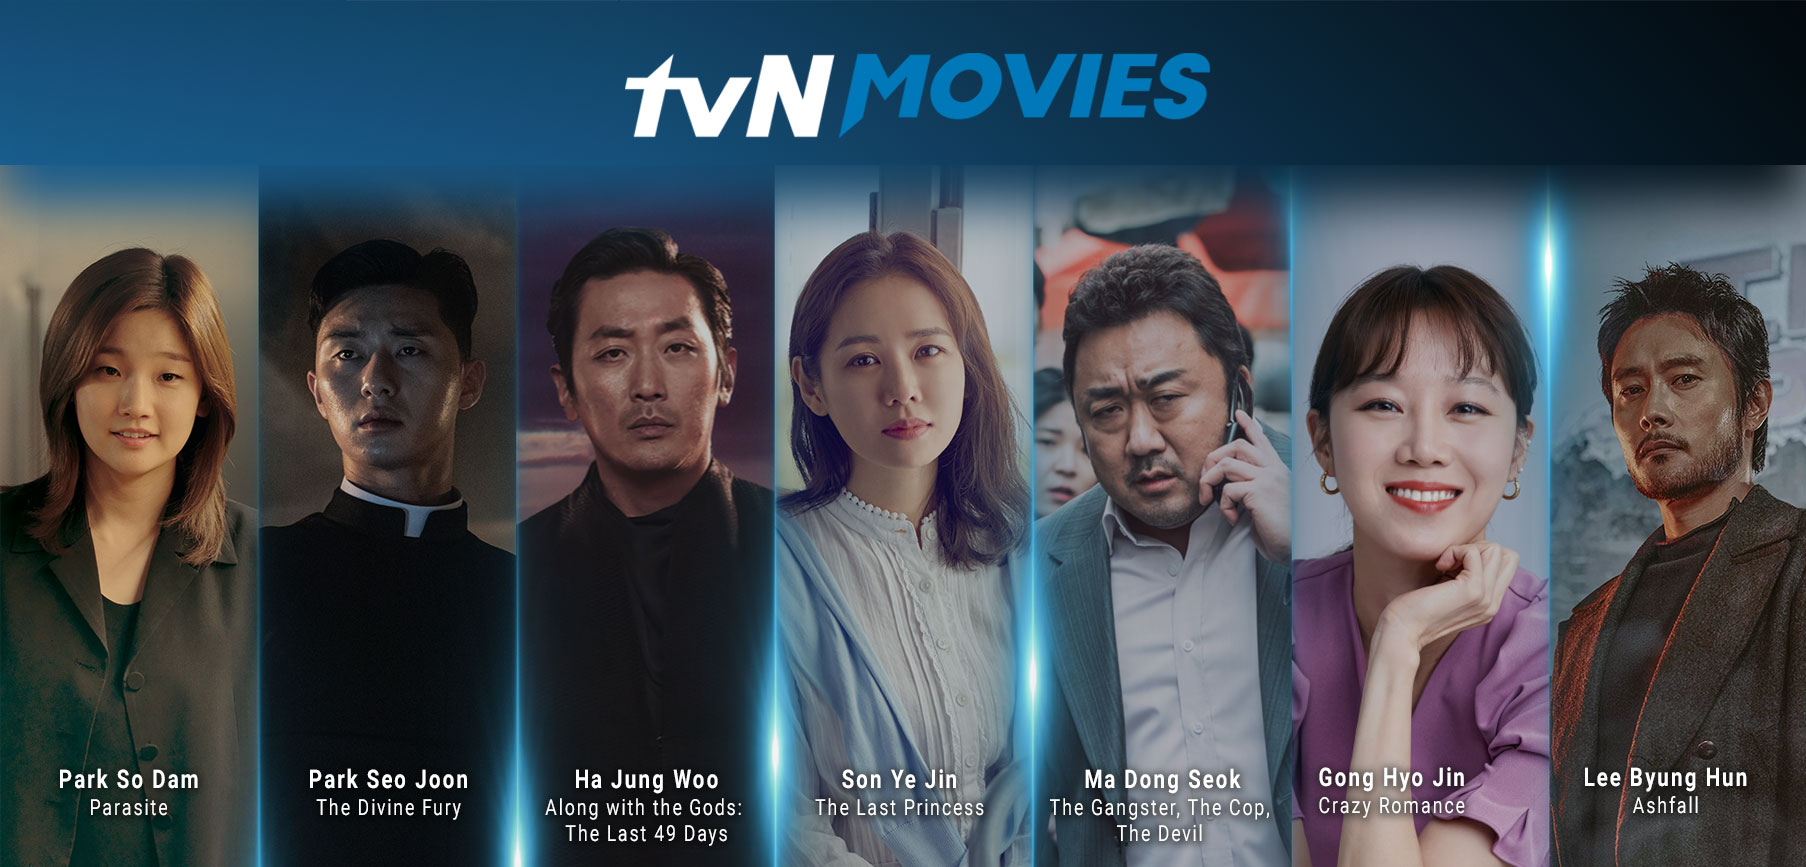 tvN Movies grow digital touchpoints in Indonesia with tech giant Gojek